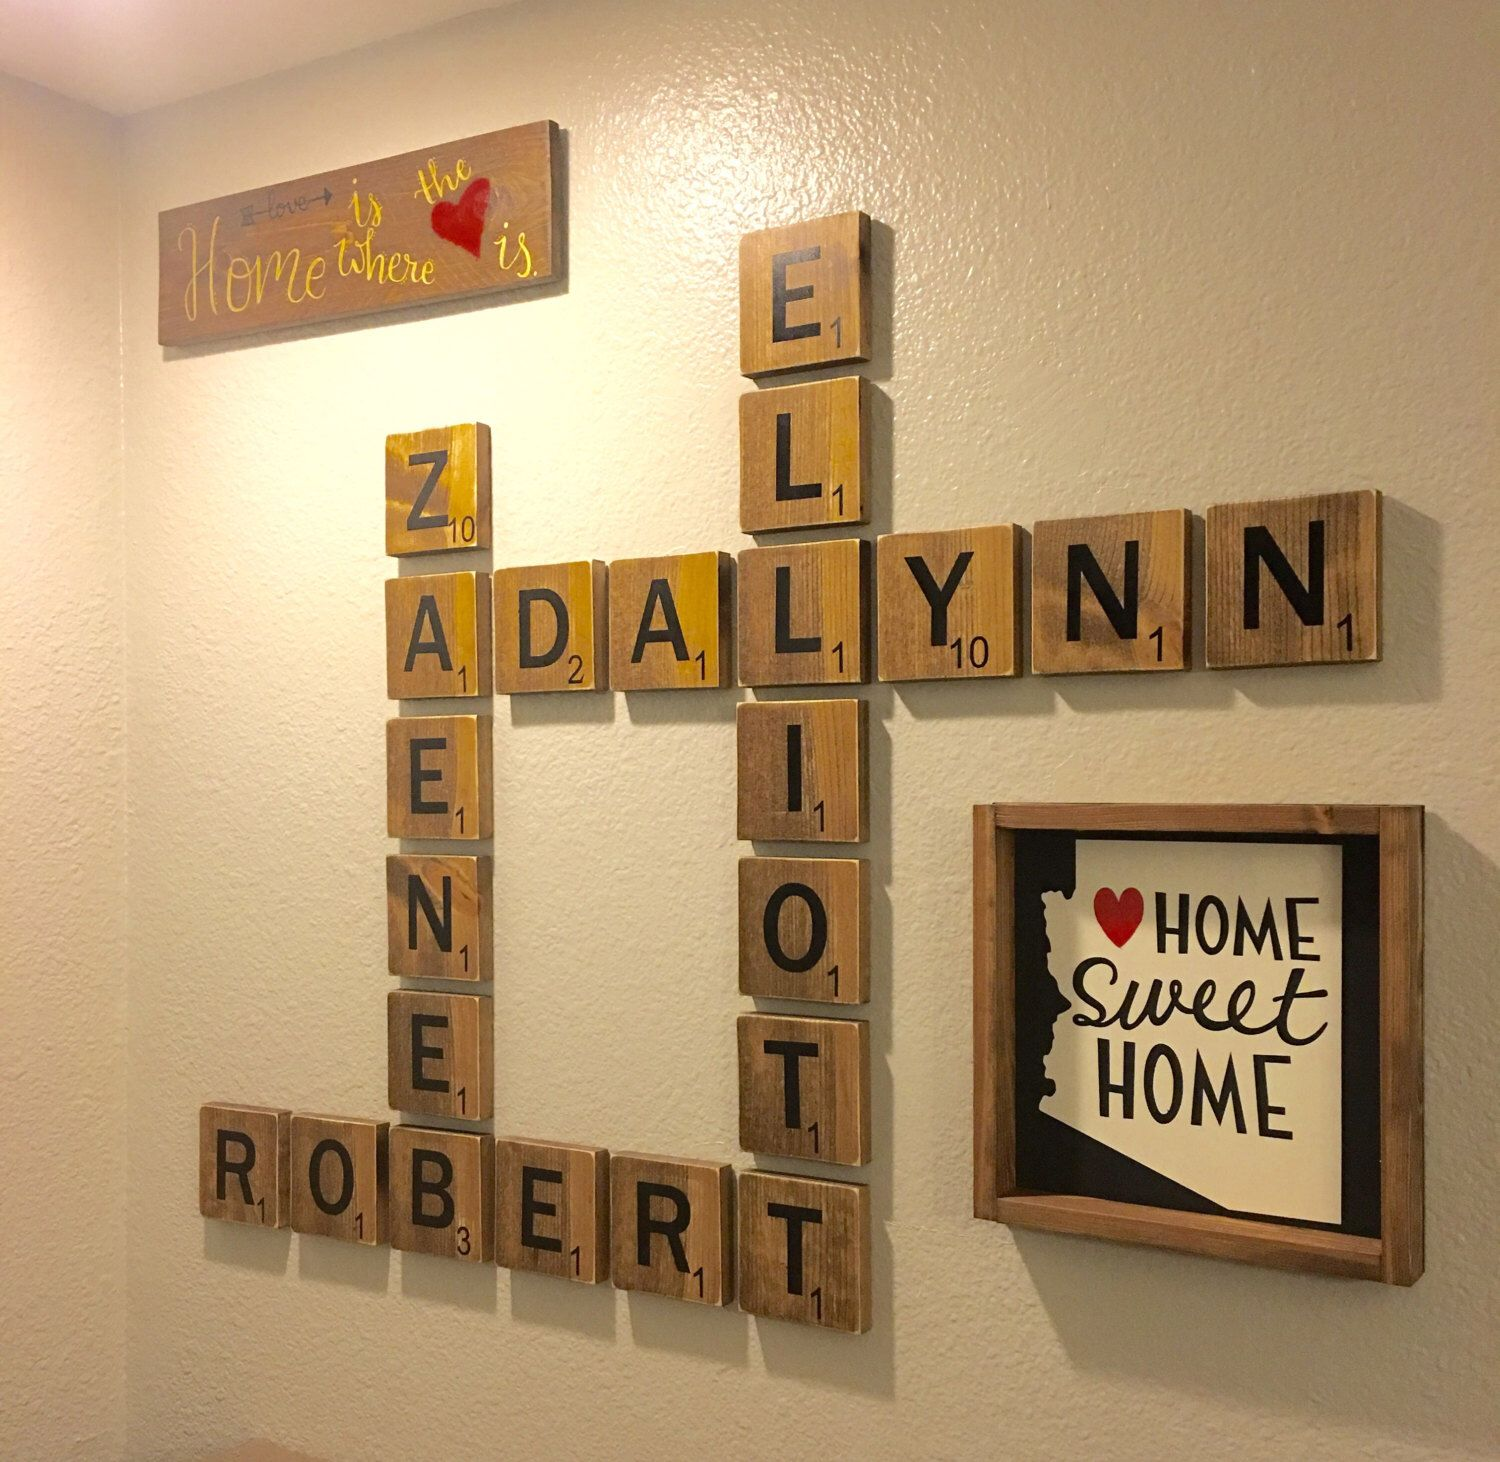 Charmant Scrabble Wall Art! Display Family Names In A Beautiful And Playful Way! Scrabble  Wall